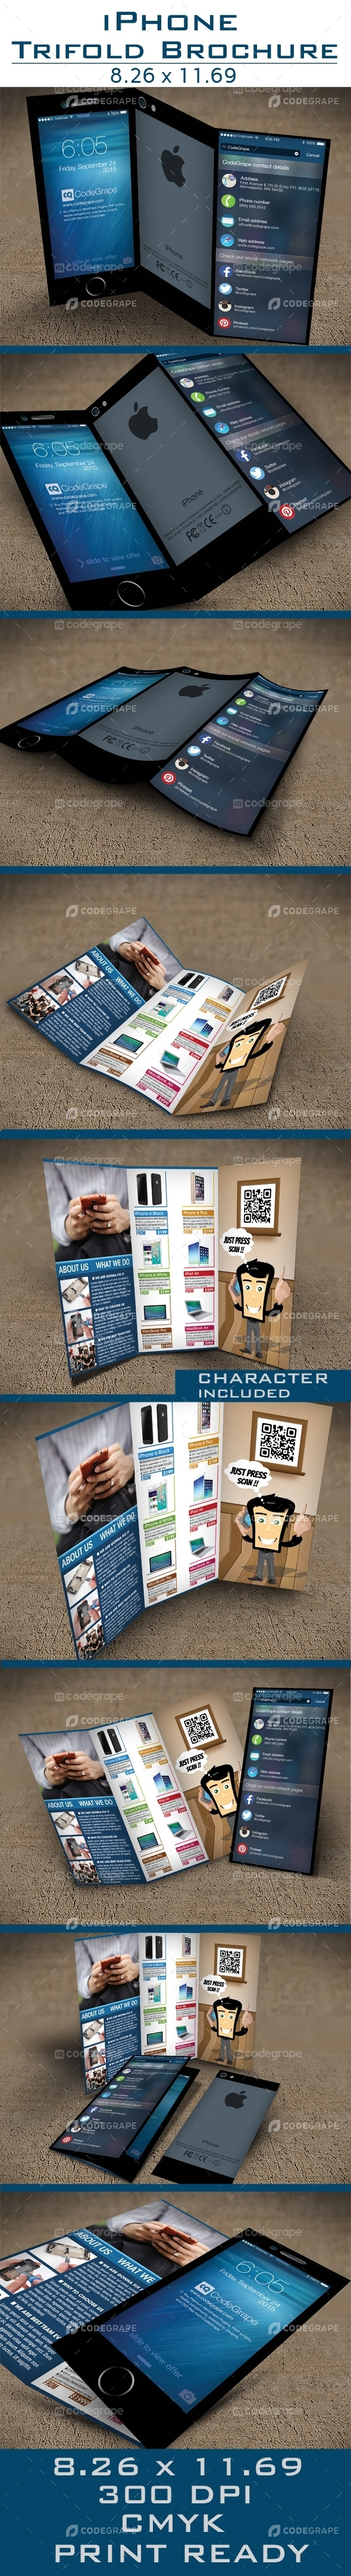 iPhone Tri-Fold Brochure